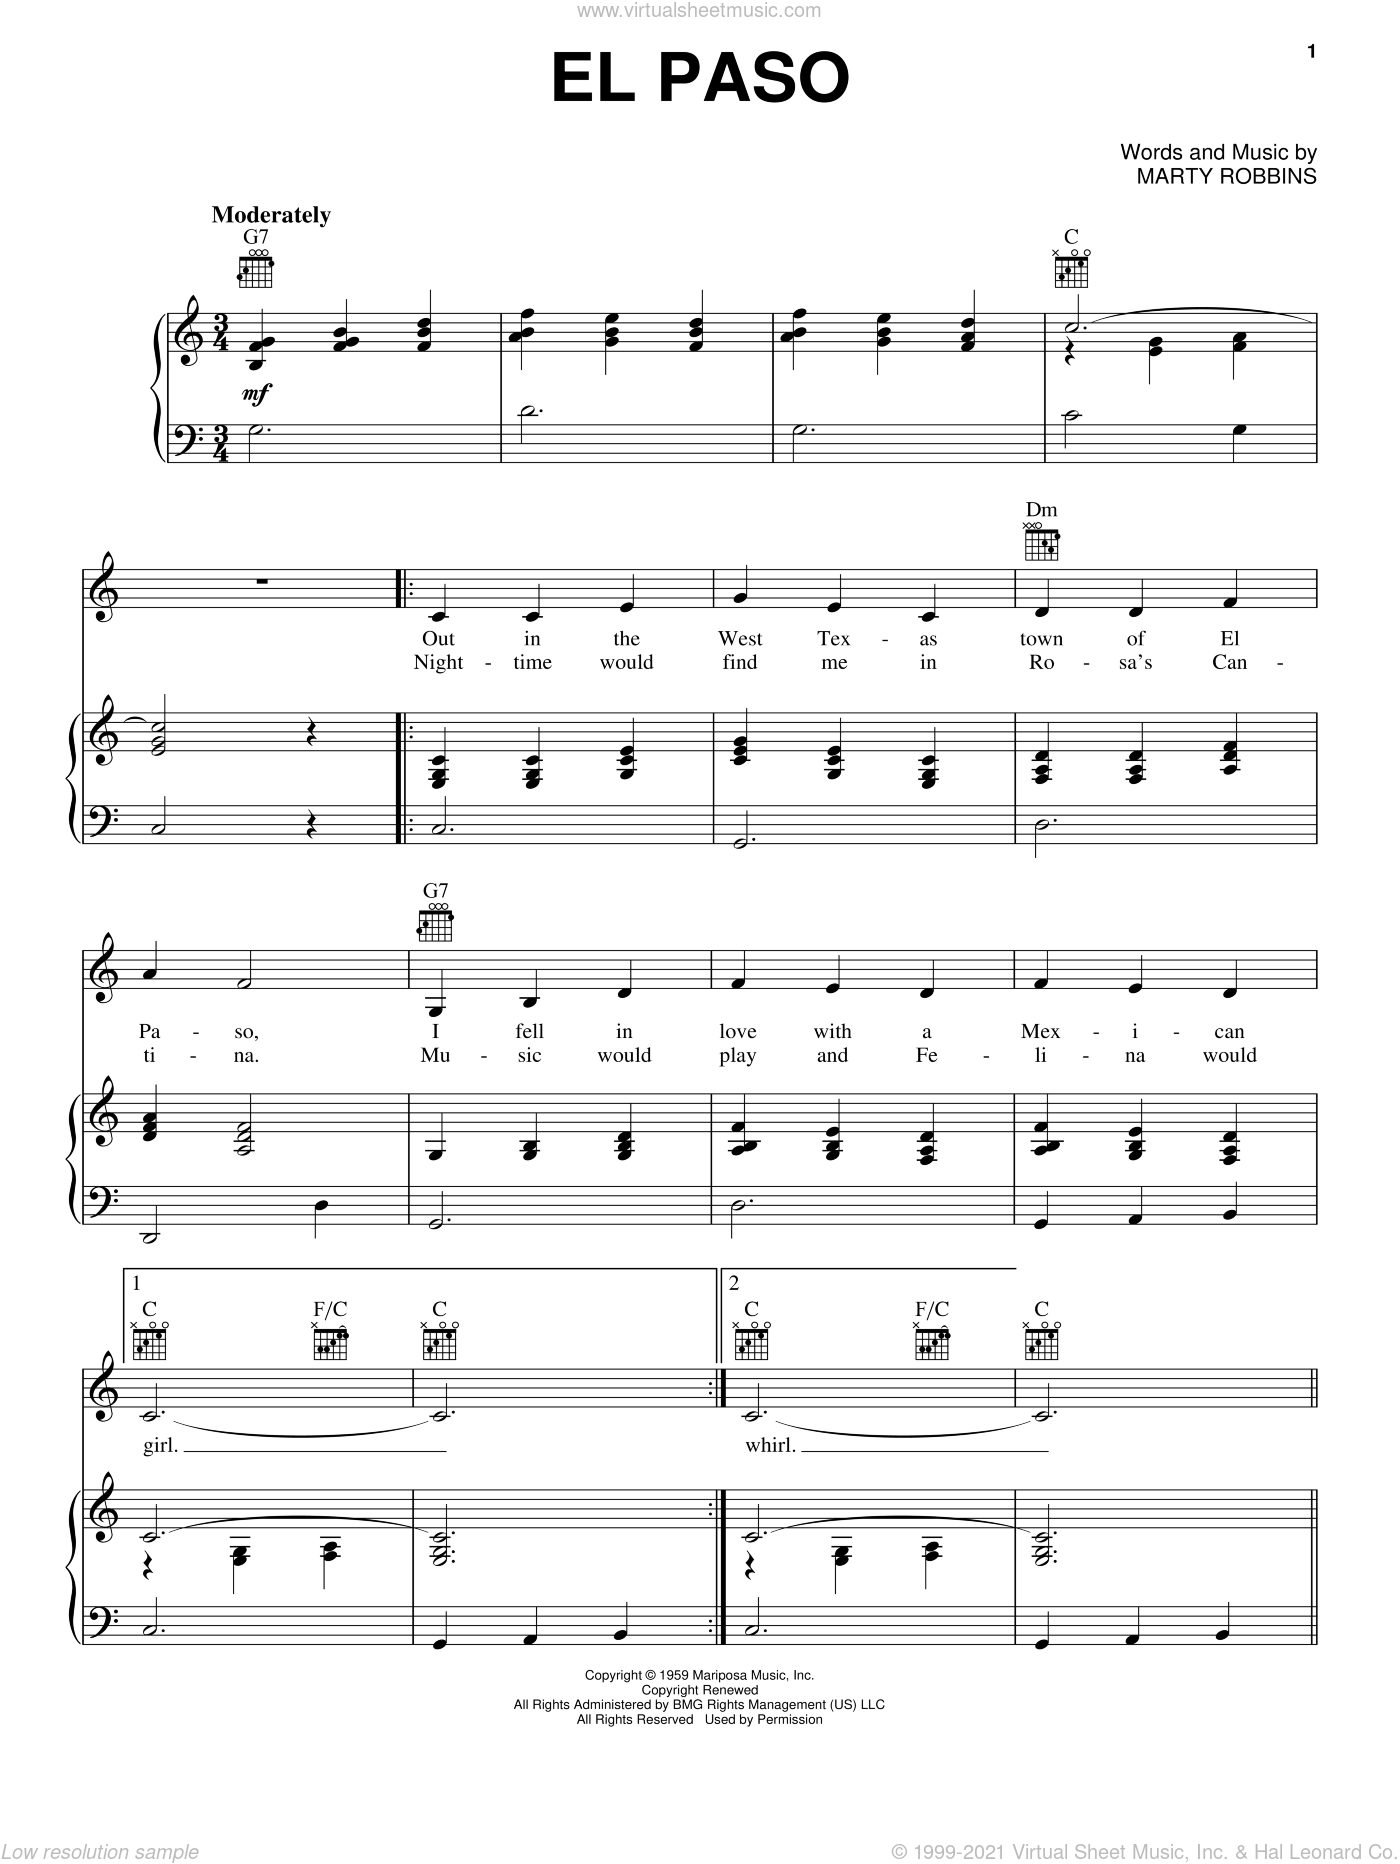 El Paso sheet music for voice, piano or guitar by Marty Robbins. Score Image Preview.